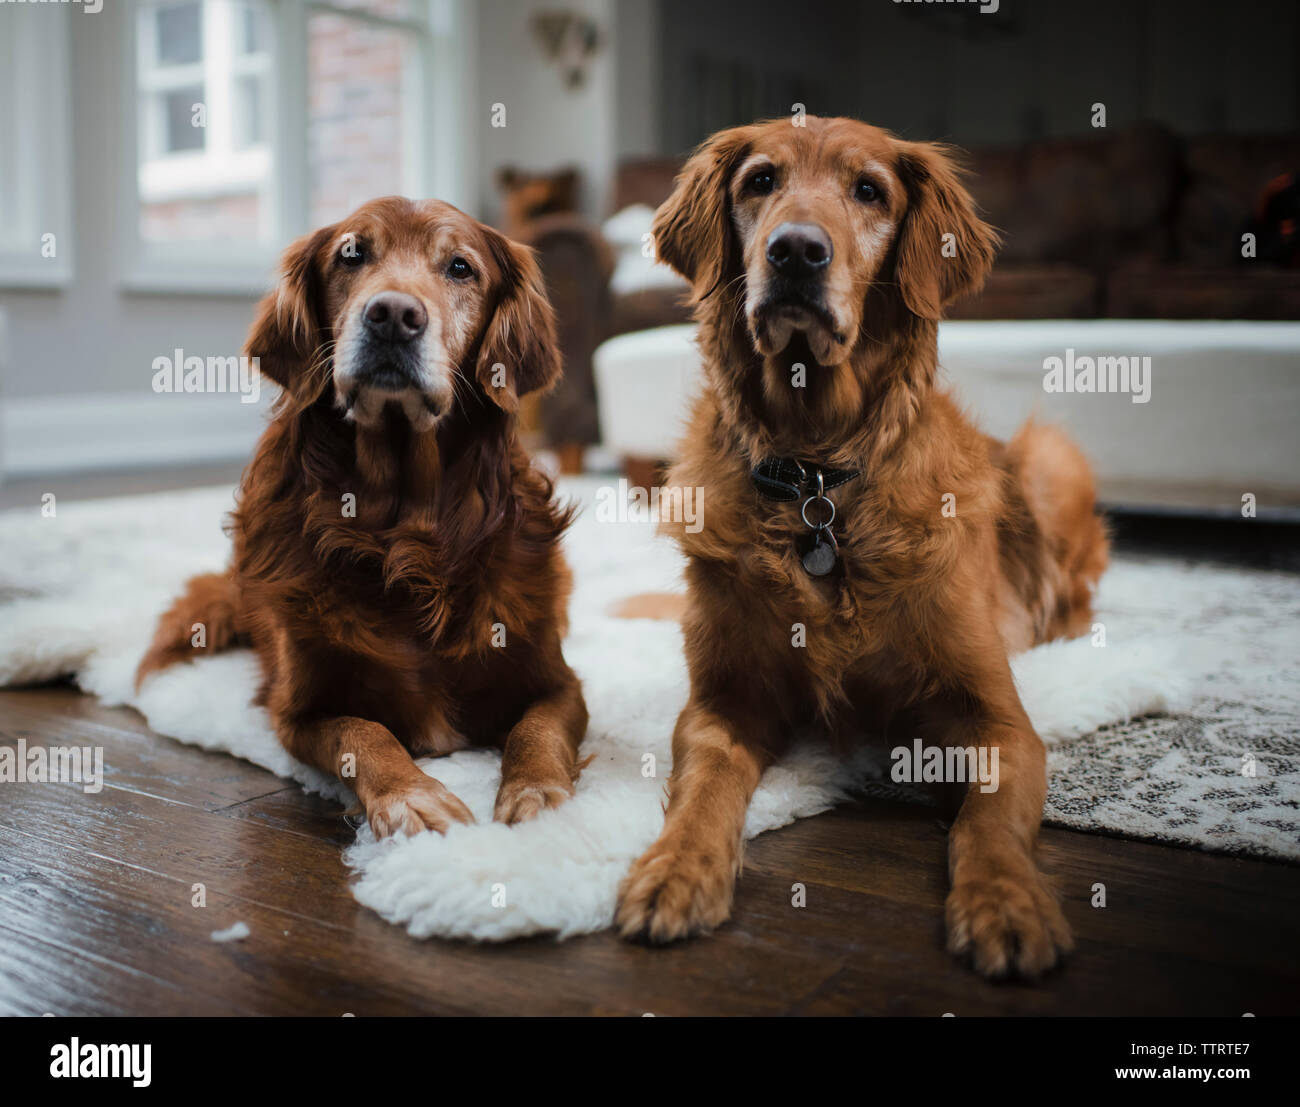 Golden retrievers sitting on rug in living room at home - Stock Image